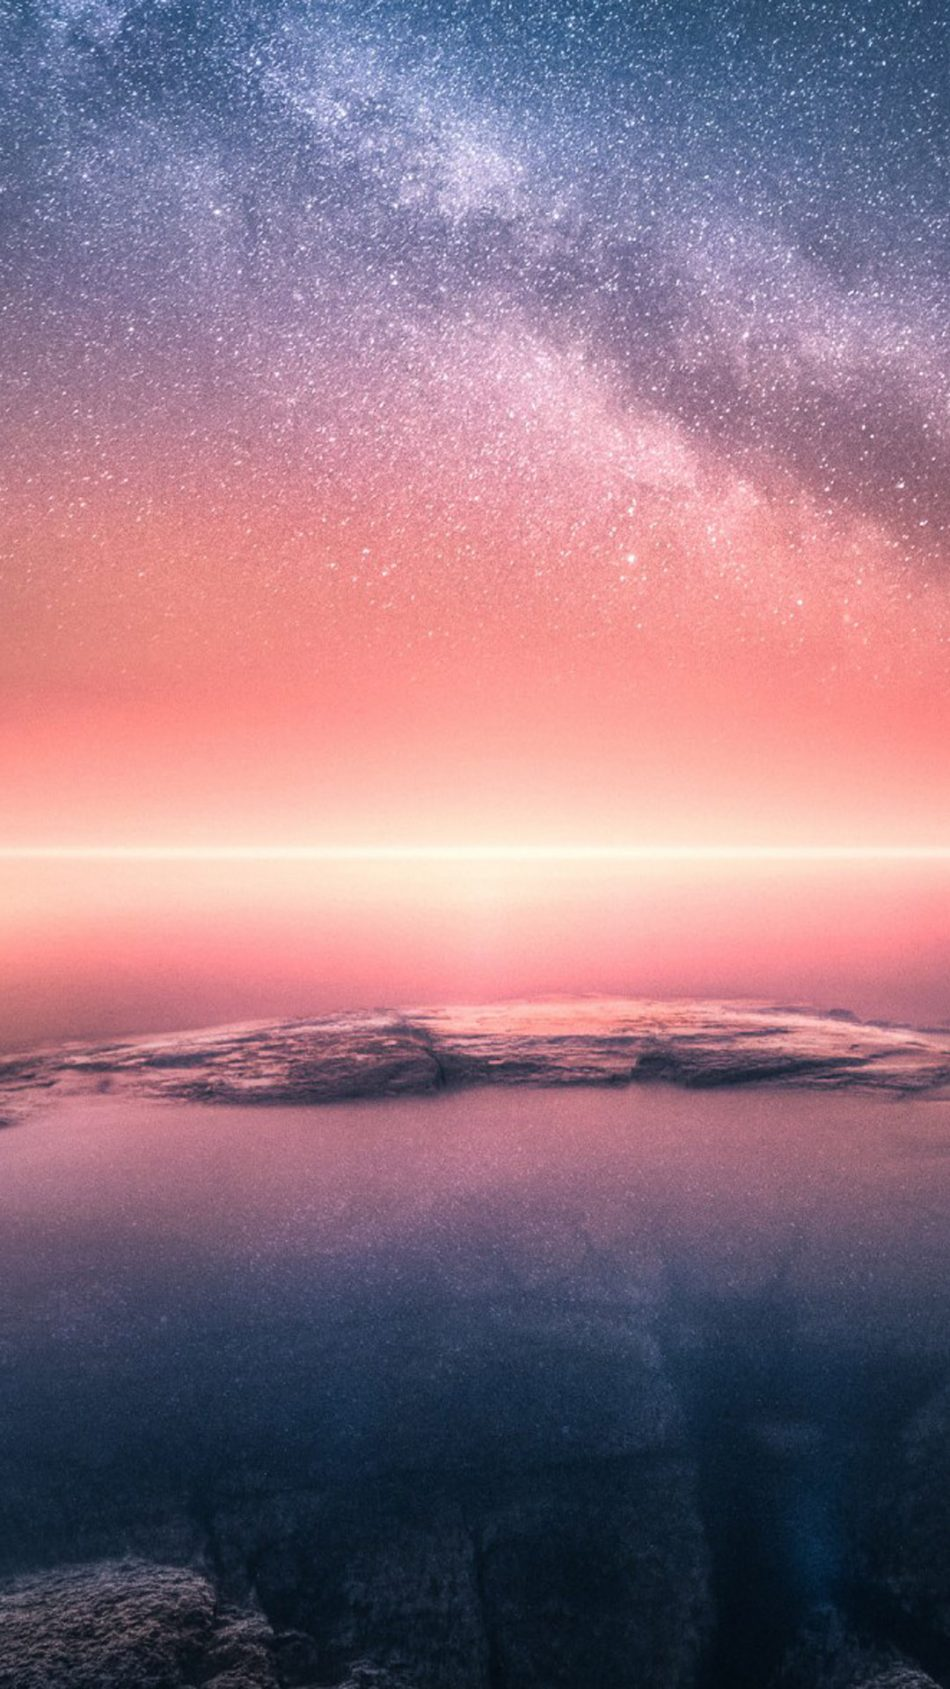 Download Horizon Sunset Starry Sky Collision Edge Free Pure 4K Ultra